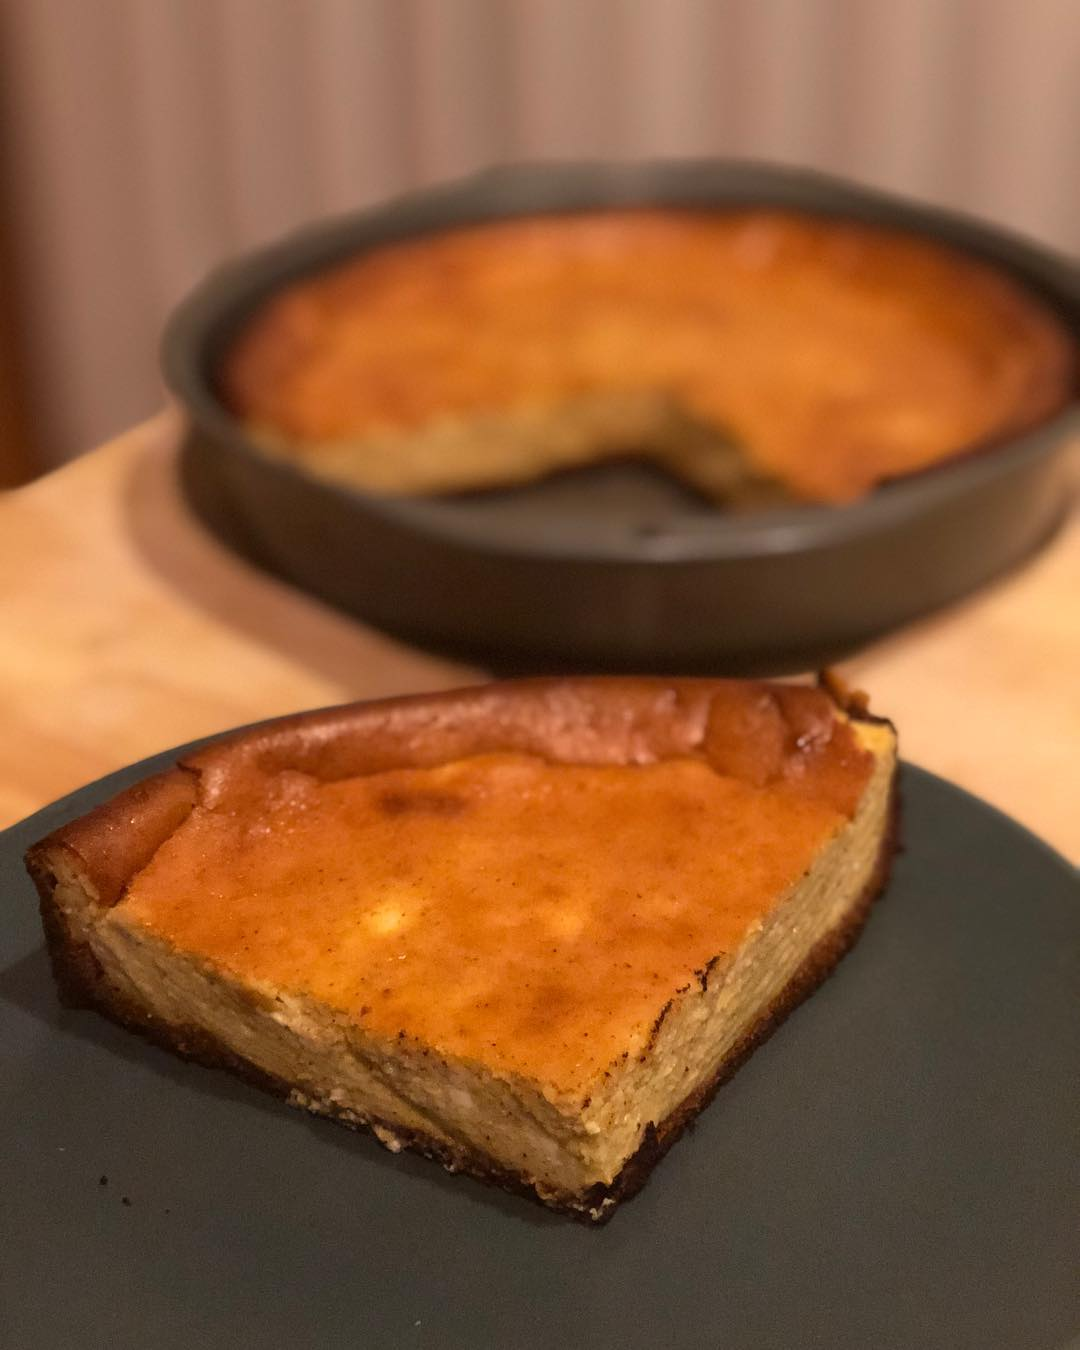 No frills, but I made a Keto pumpkin cheesecake the other day…. I used allulose which isn't as sweet as sugar so I should have added more of it… I also made the pumpkin purée from scratch (along with pumpkin fries and pumpkin seeds- nothing wasted!) so here's the recipe below! I just made a crust from almond flour; I googled for a basic recipe! —— 1  cup sugar (allulose 1 1/3 cup) 3 (8 ounce) packages cream cheese 1  teaspoon vanilla 1  cup pumpkin 3  eggs 1⁄2 teaspoon cinnamon 1⁄4 teaspoon nutmeg 1⁄4 teaspoon allspice —— In a large mixing bowl combine the cream cheese, 1 C sugar, and vanilla. Mix with an electric mixer until smooth. Add the pumpkin, eggs, cinnamon, nutmeg and allspice and continue beating until smooth and creamy. Pour the filling into the pan. Bake for 50-60 minutes- The top will turn a bit darker at this point. Remove from the oven and allow the cheesecake to cool. Refrigerate, slice and enjoy